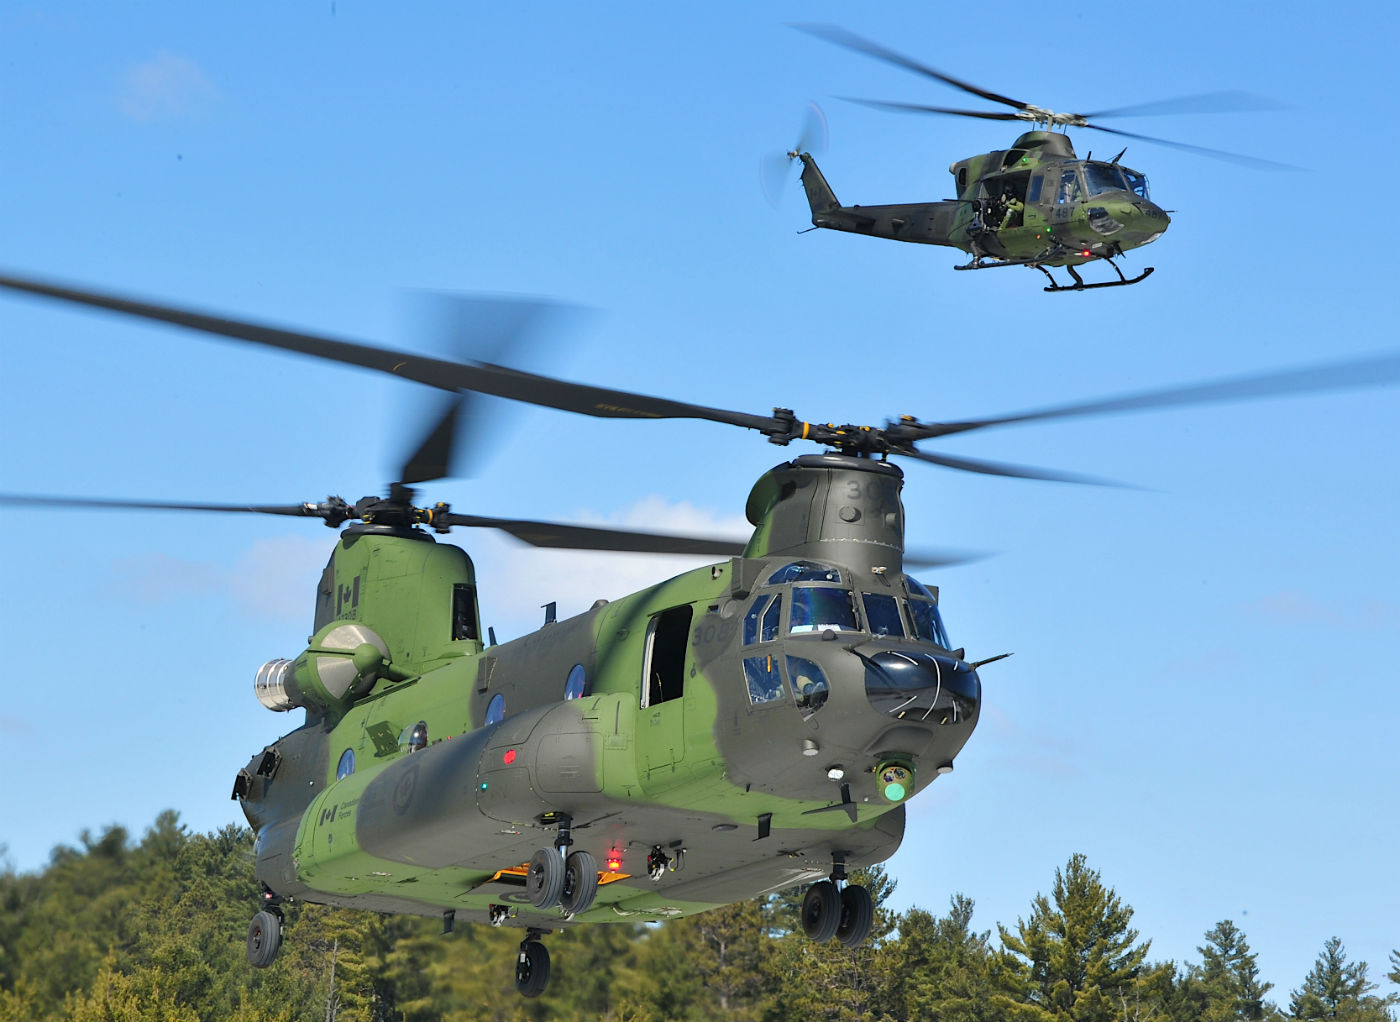 The Chinooks are essential to transport light infantry battalions and sustain troops throughout the battle space, and are steadily being integrated into the army's force employment concept. Mike Reyno Photo